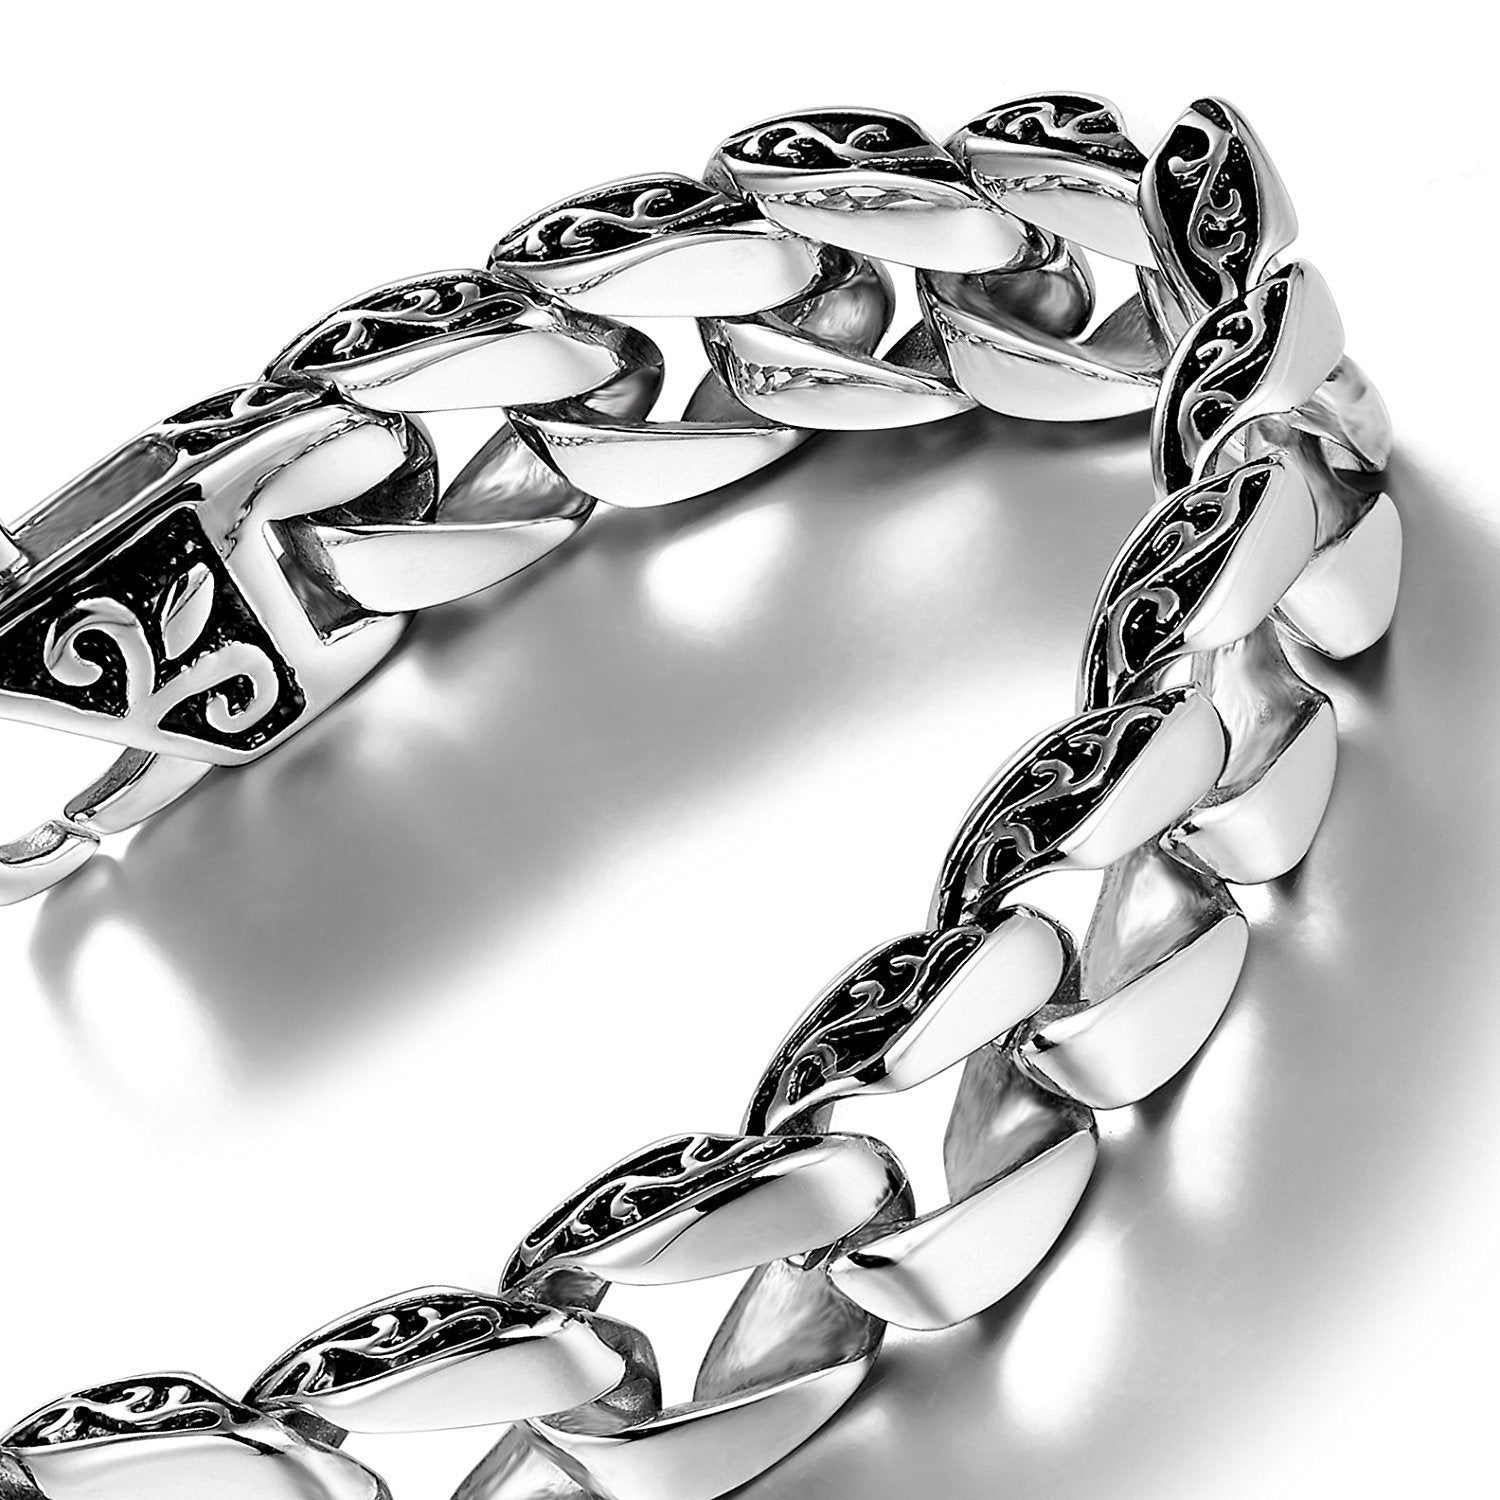 Ornate Fleur De Lis Stainless Steel Link Bracelet - Silver - 8.5 Inches